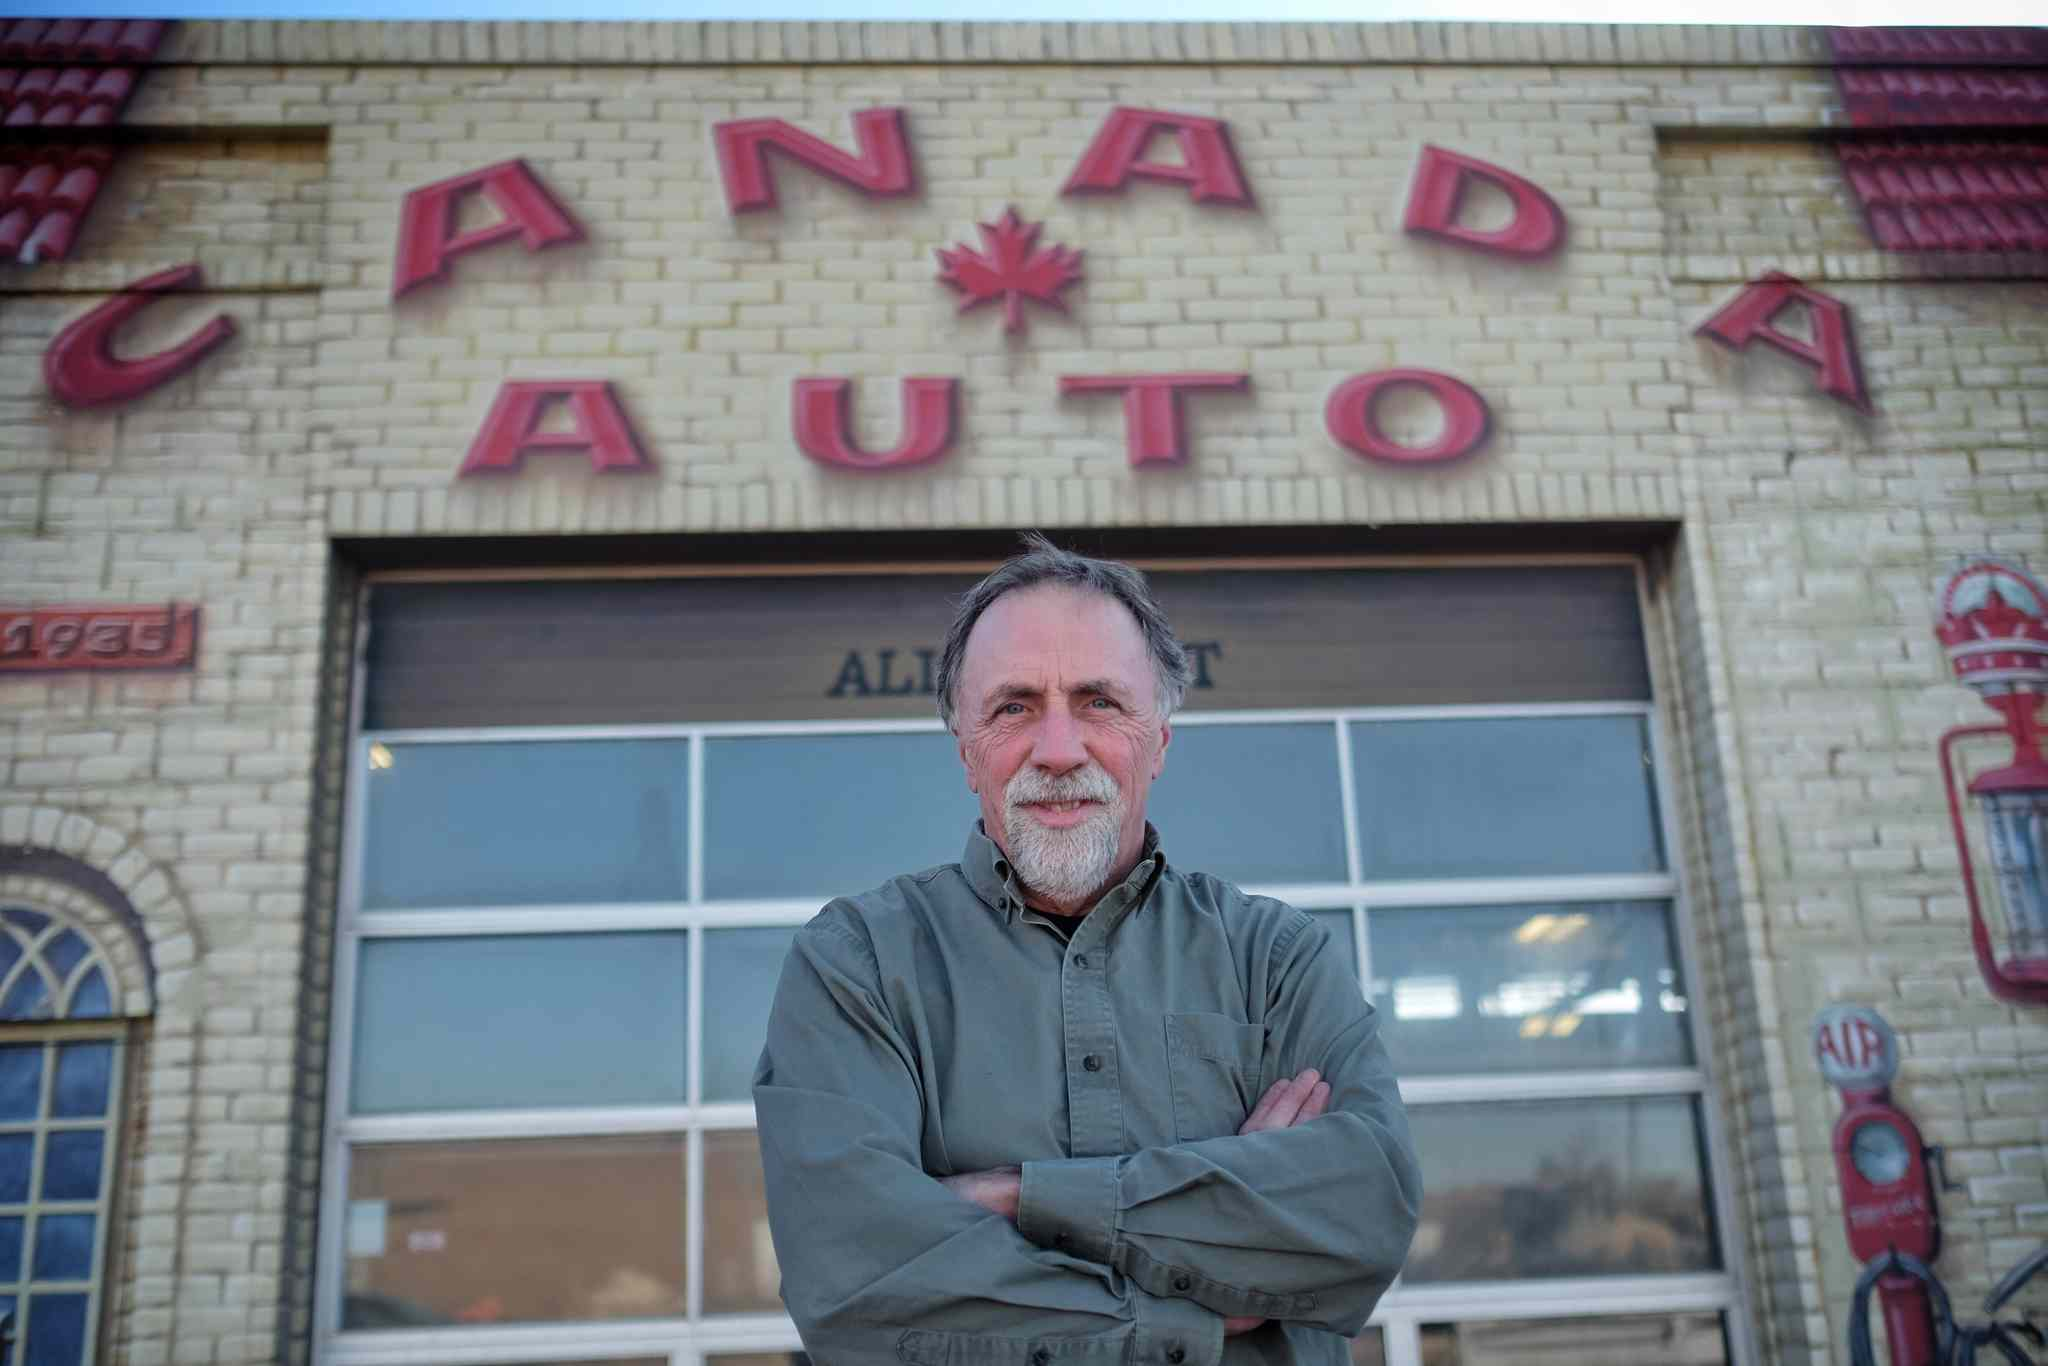 The city sold too much land with the old football stadium and intends to expropriate a chunk of Dan Iwanchuk's land at Canada Auto on St. Matthews Avenue.